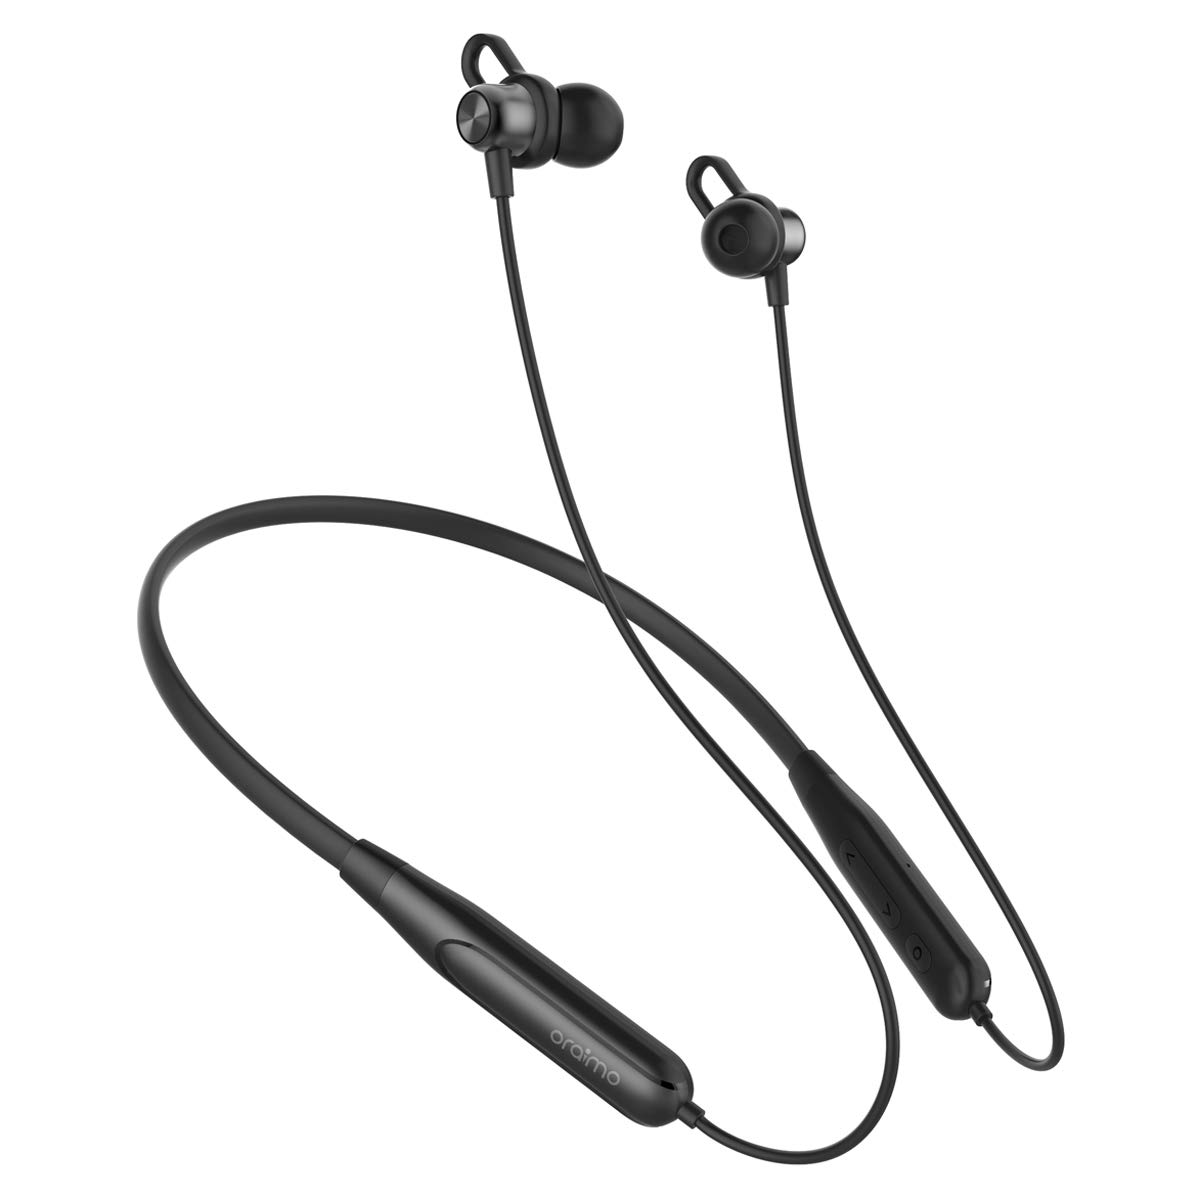 Oraimo Feather 2C Neckband with 10mm Drivers Launched